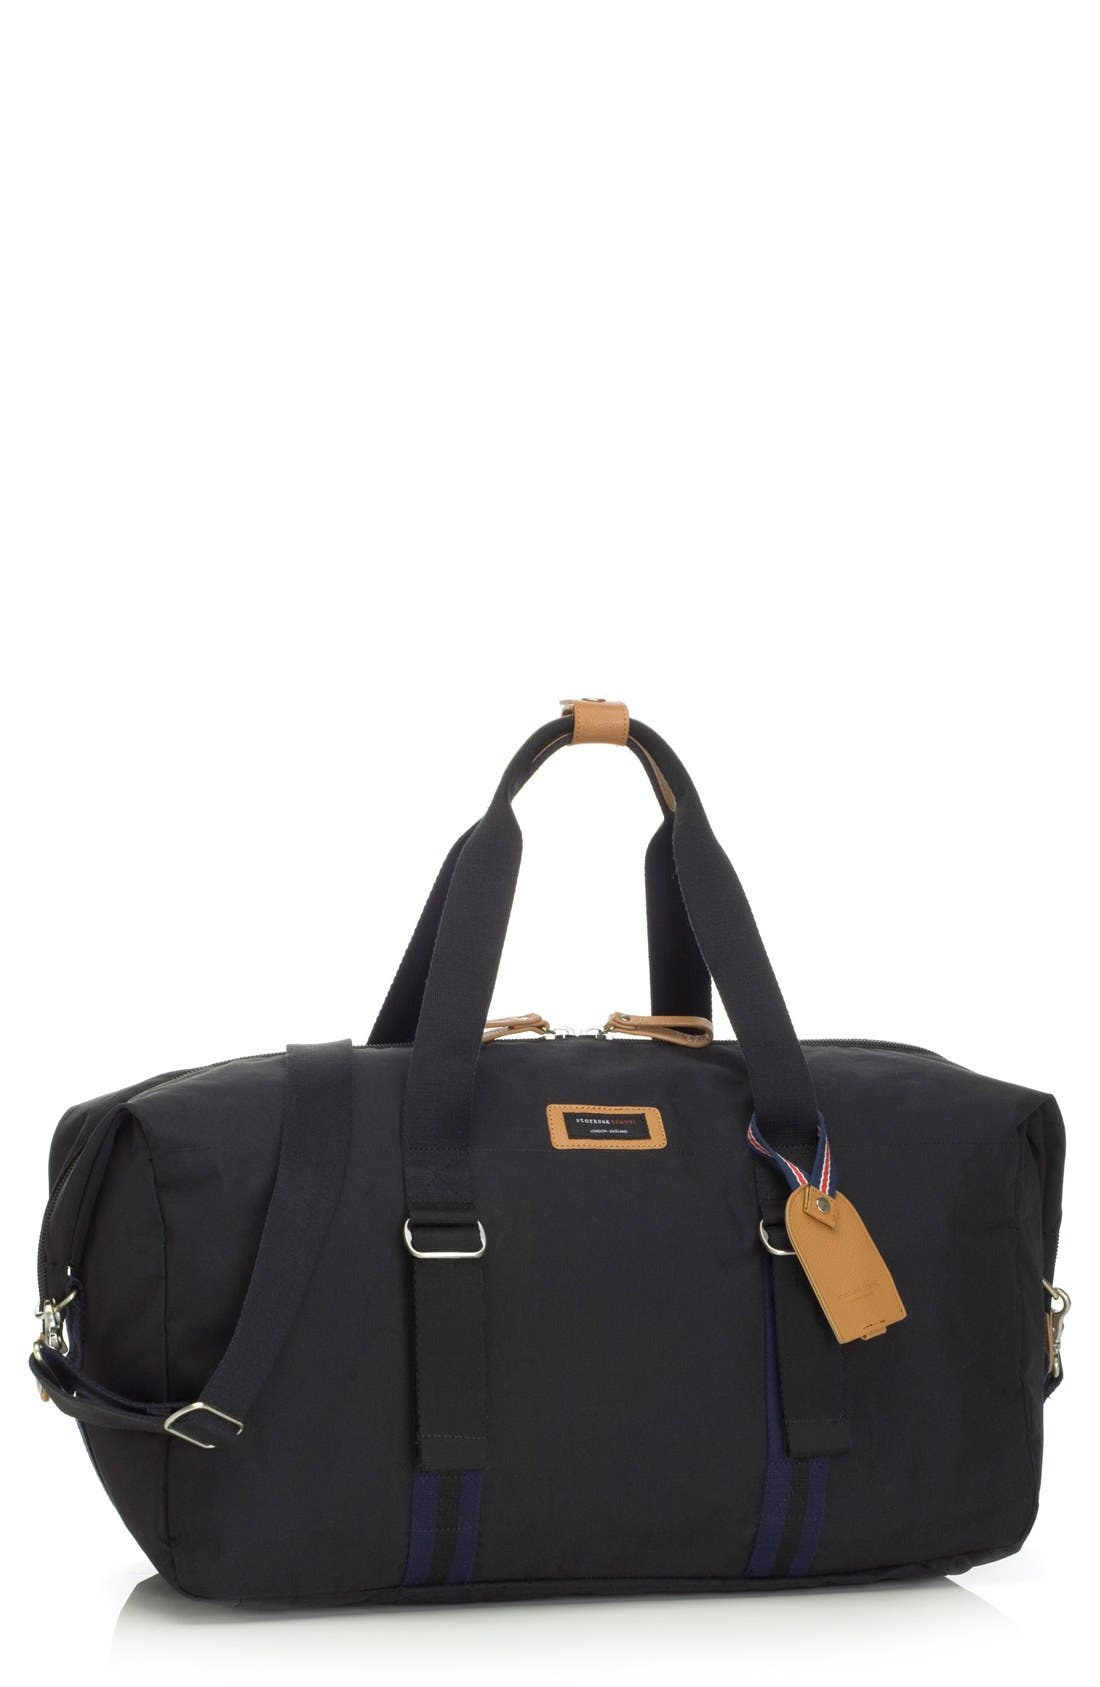 Travel Duffel with Hanging Organizer,                         Main,                         color, Black